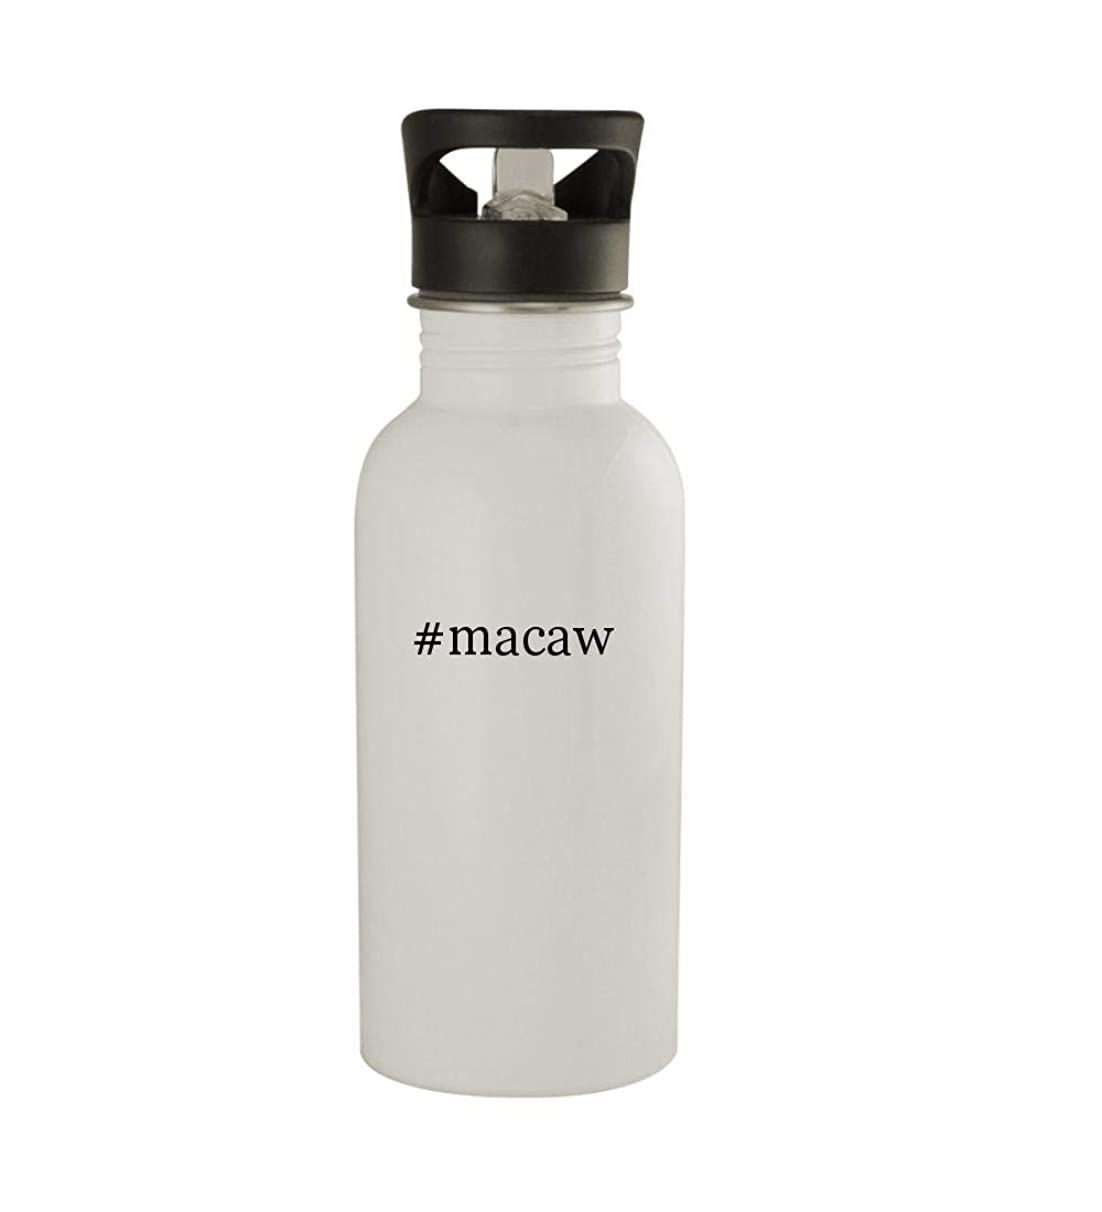 Knick Knack Gifts #Macaw - 20oz Sturdy Hashtag Stainless Steel Water Bottle